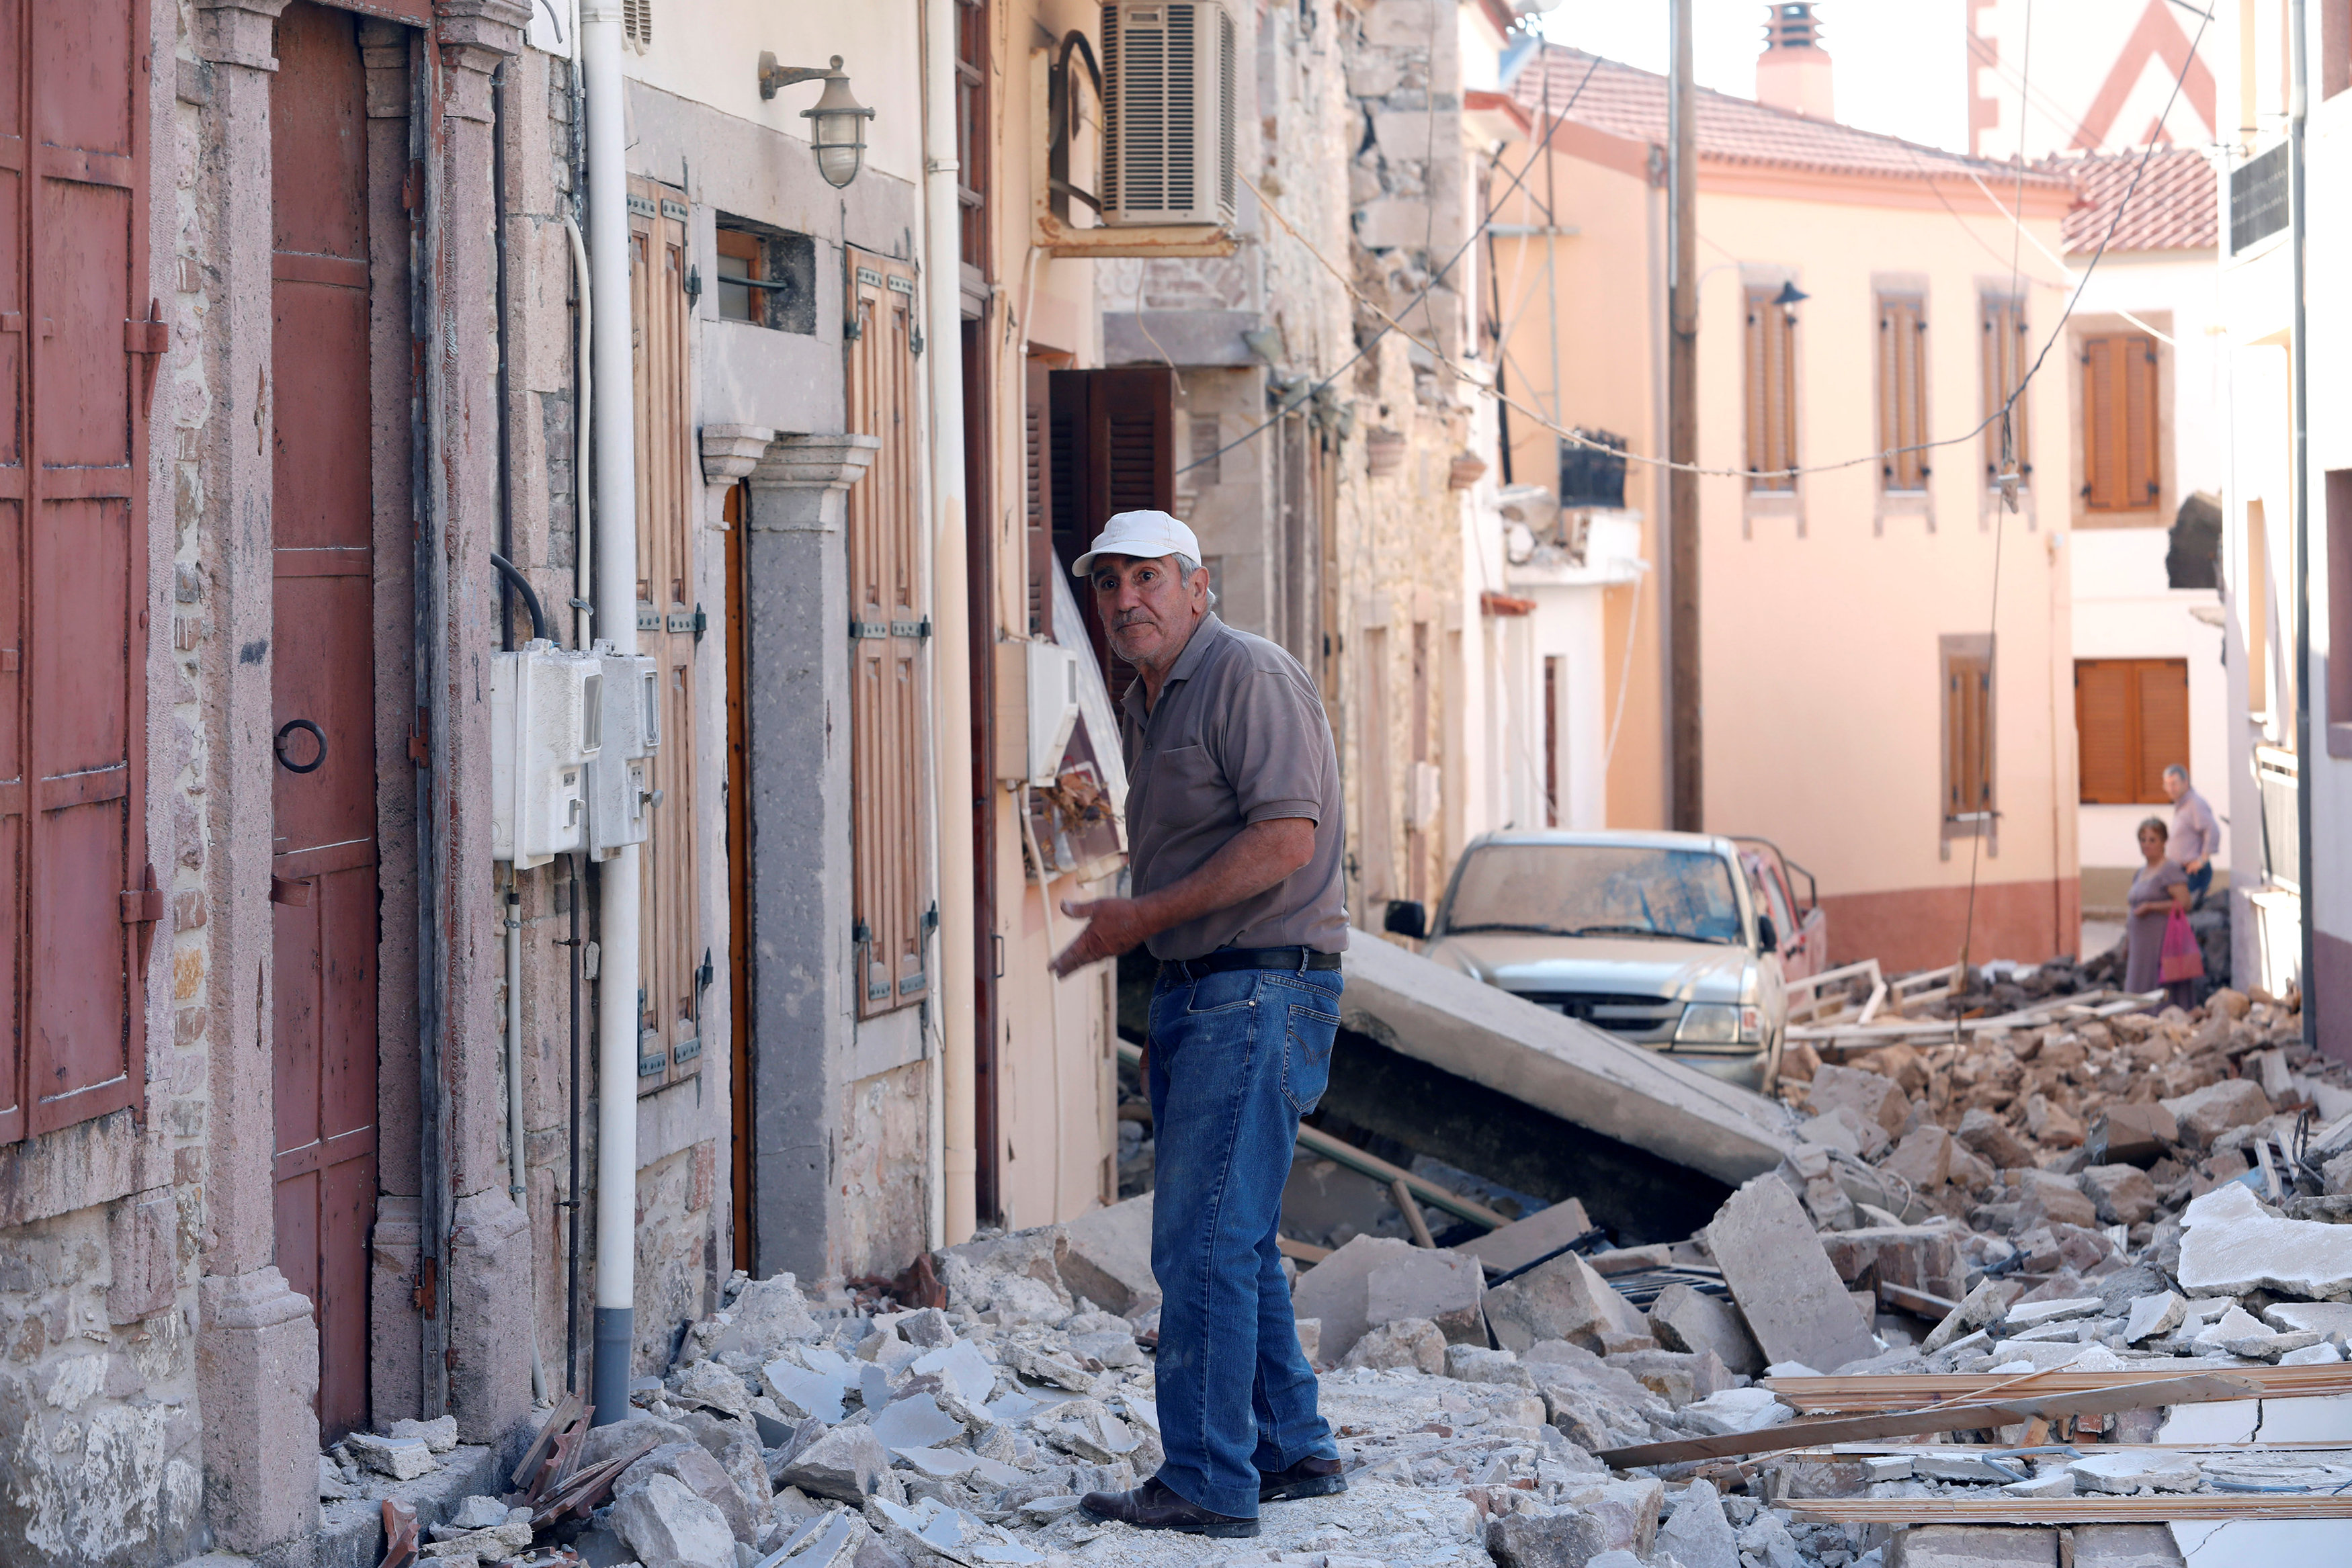 A man stands among damaged buildings at the village of Vrissa on the Greek island of Lesbos, Greece, after a strong earthquake shook the eastern Aegean on June 12, 2017. (REUTERS/Giorgos Moutafis)